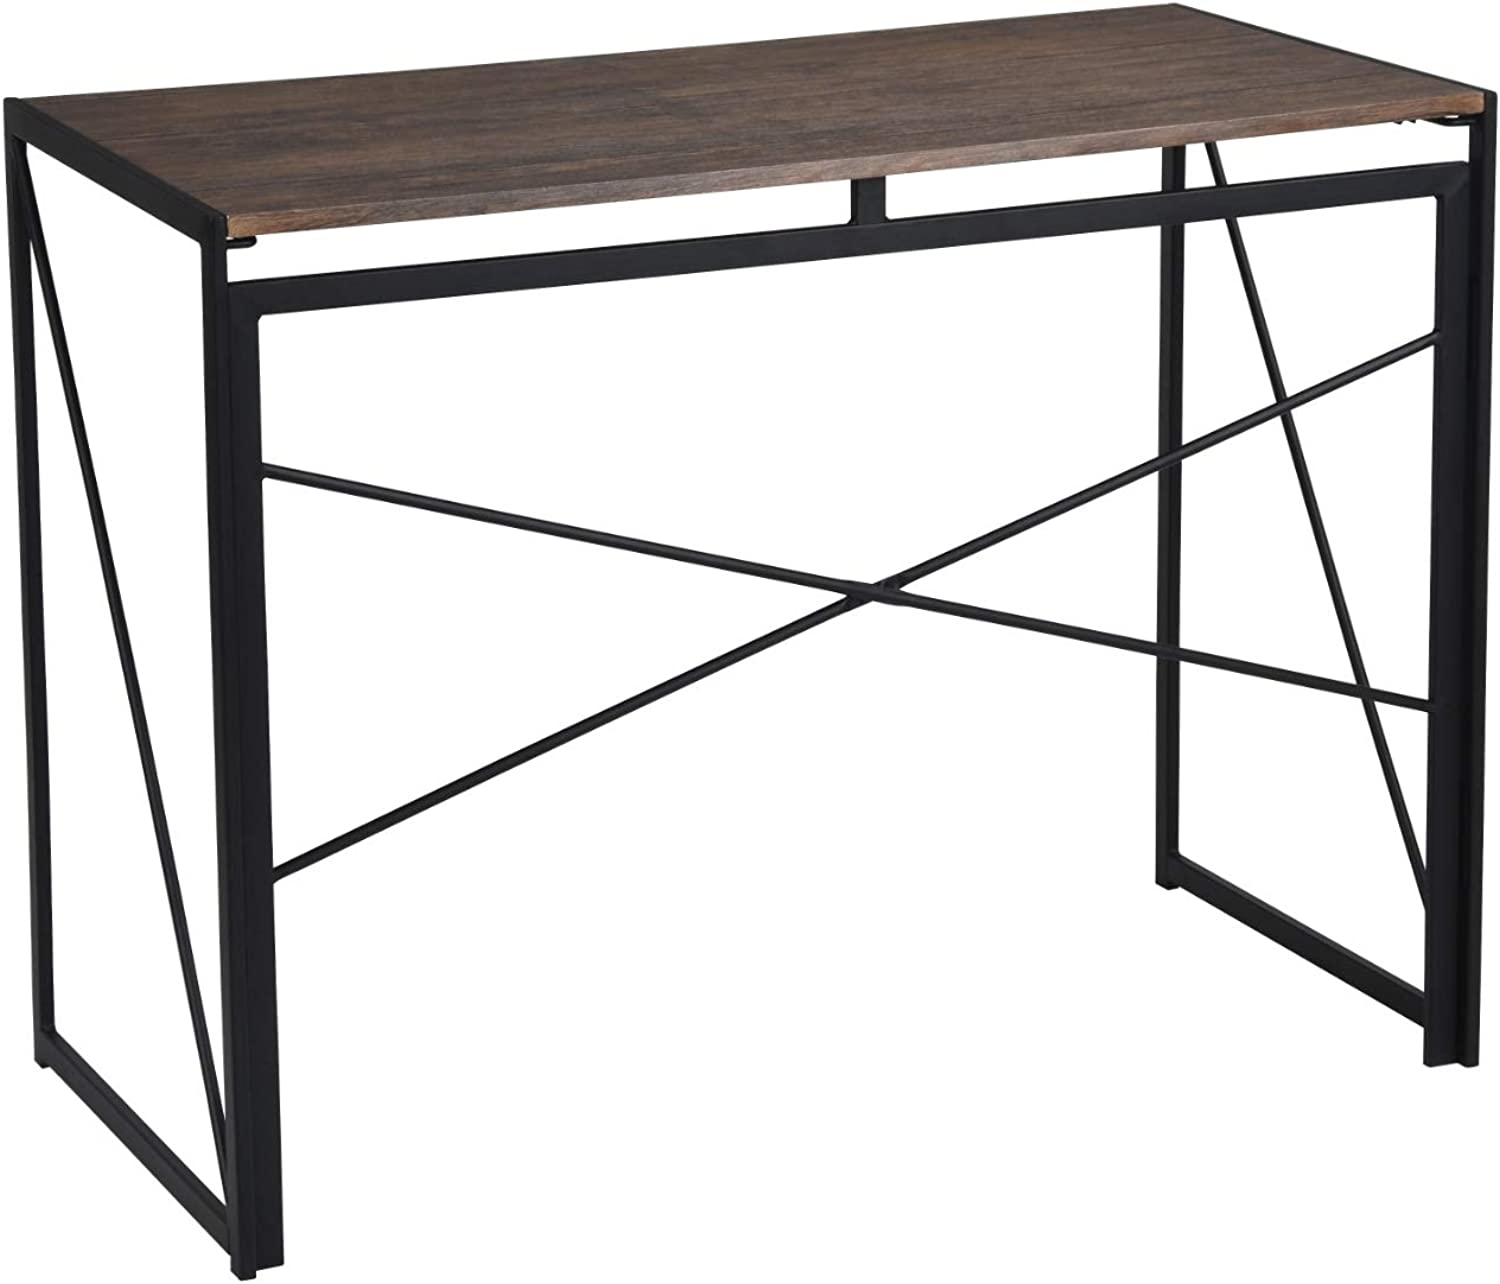 Homy Casa Computer Folding Desk Writing Table Workstation Compartments Shelves with Metal Legs (Black)